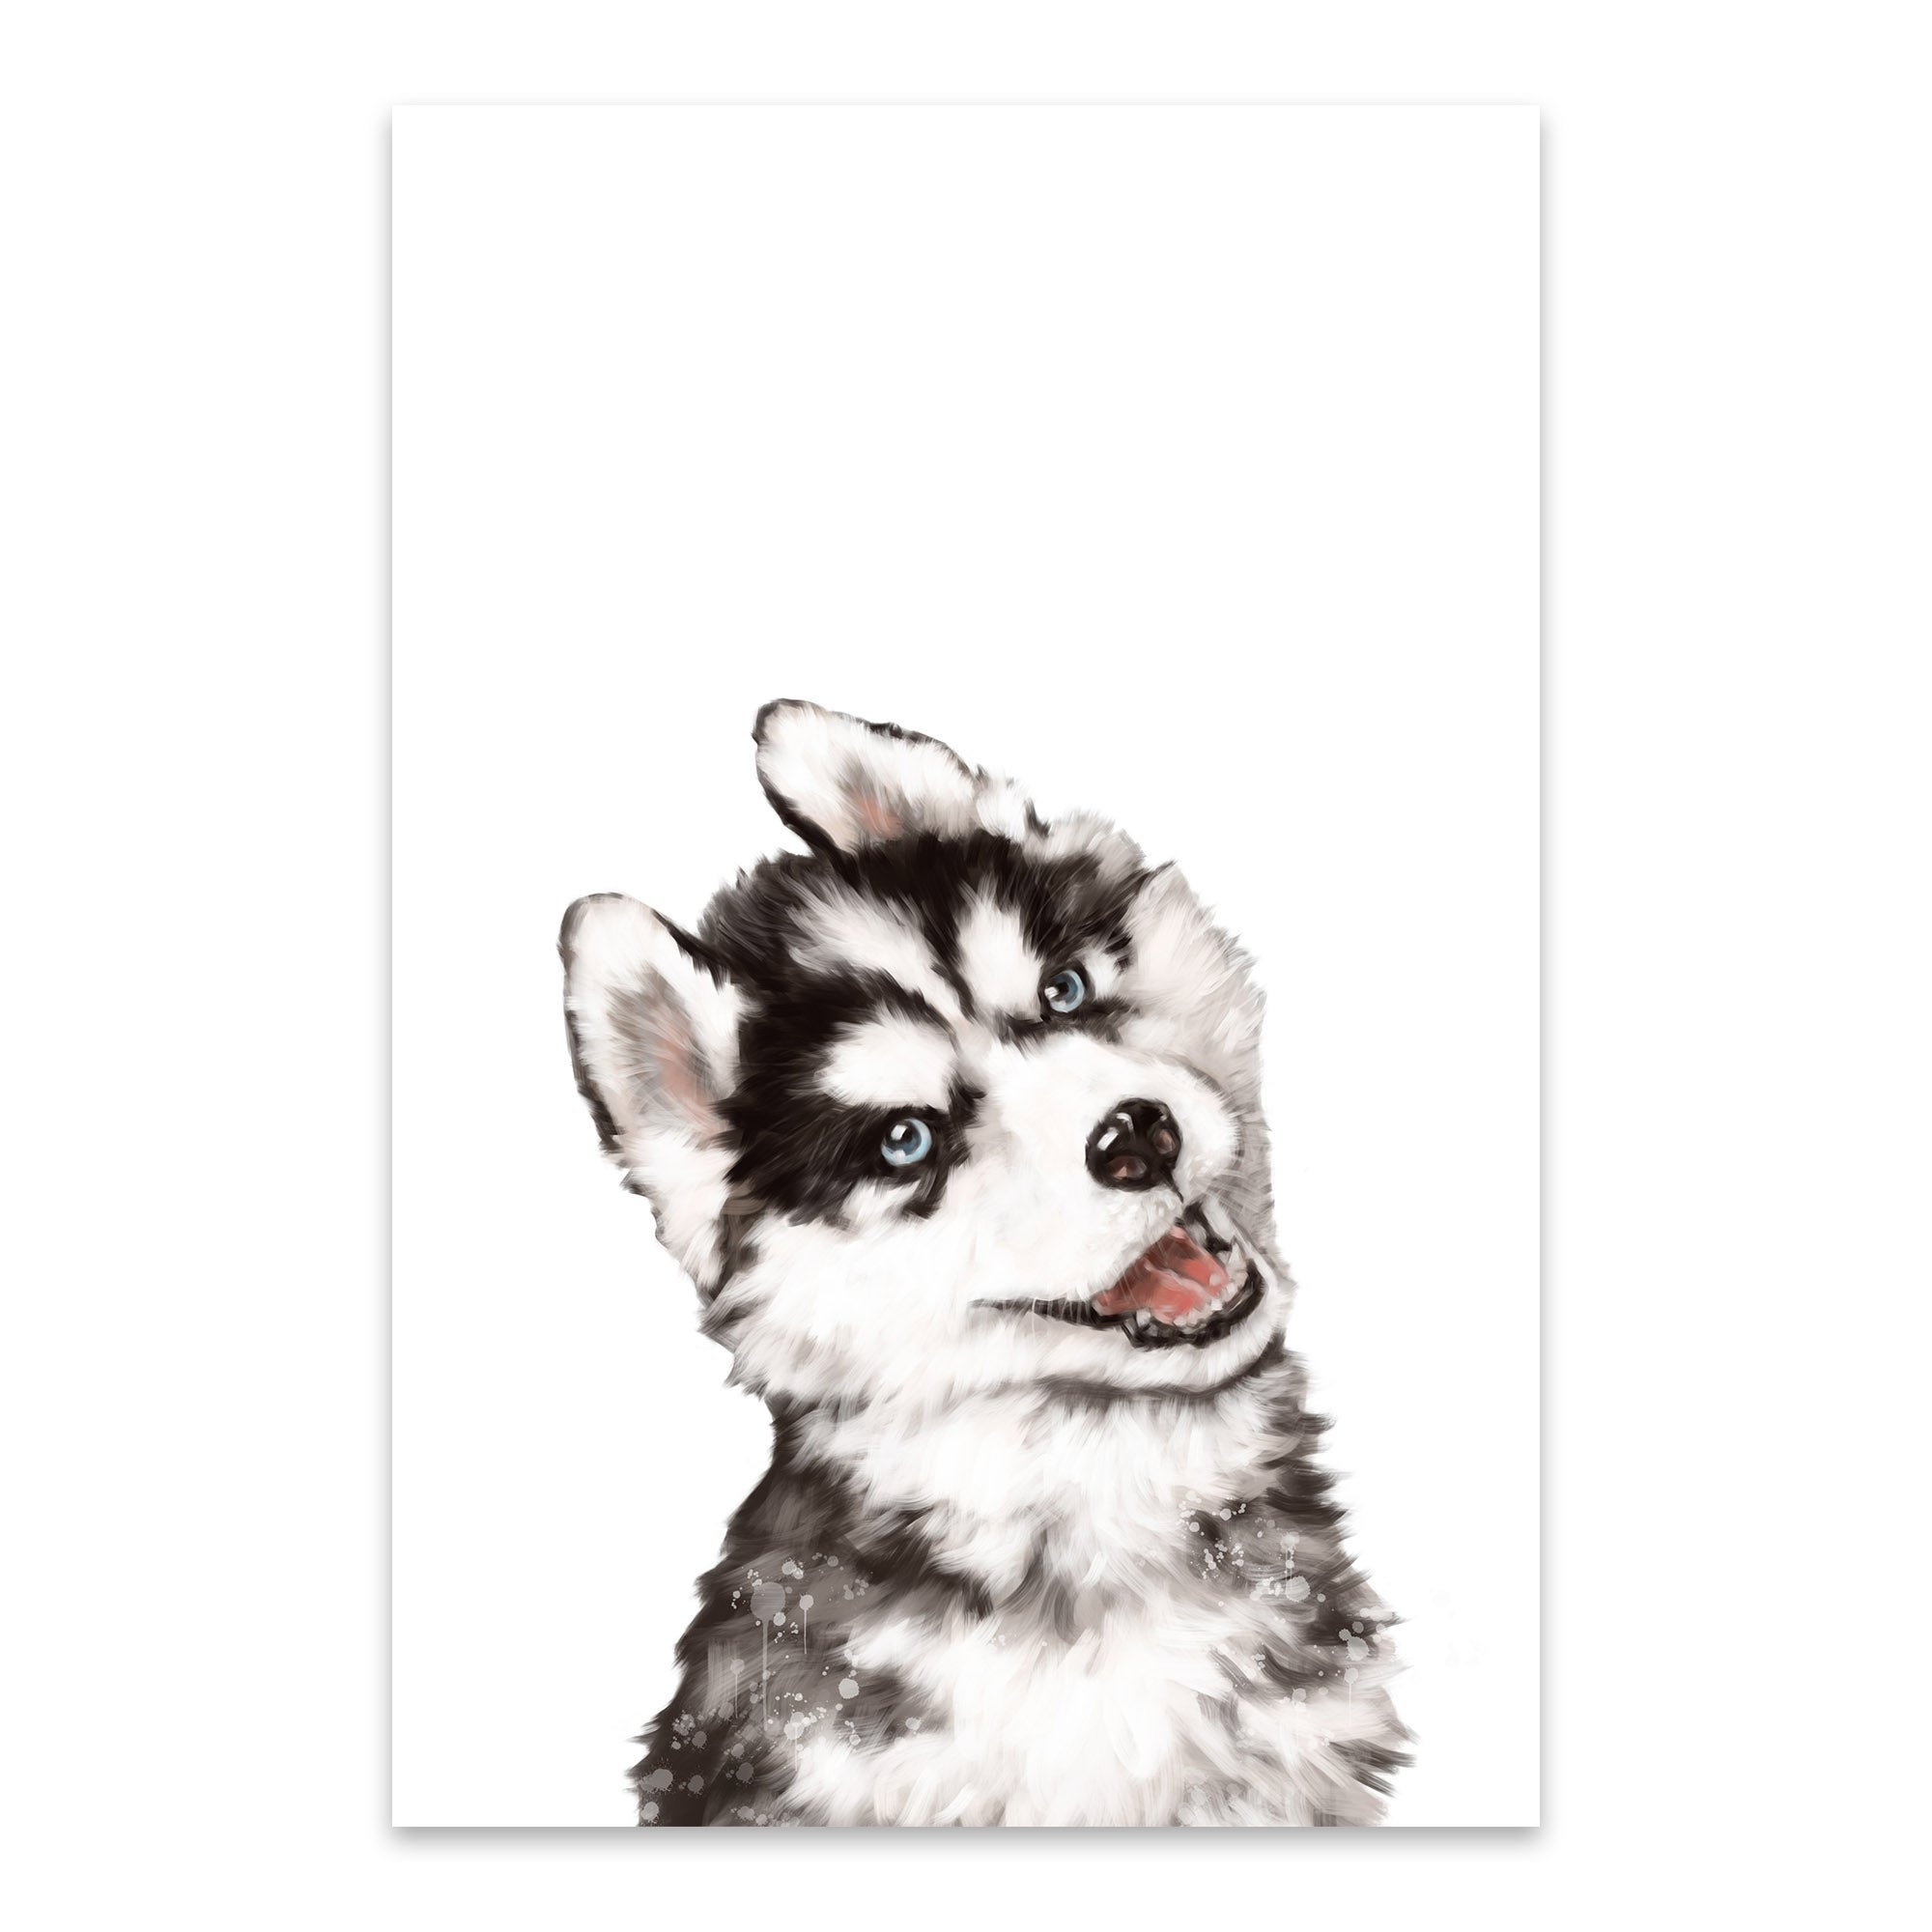 Shop Noir Gallery Big Nose Work Baby Husky Metal Cute Dog Peekaboo Animal Wall Art Print Overstock 27560277